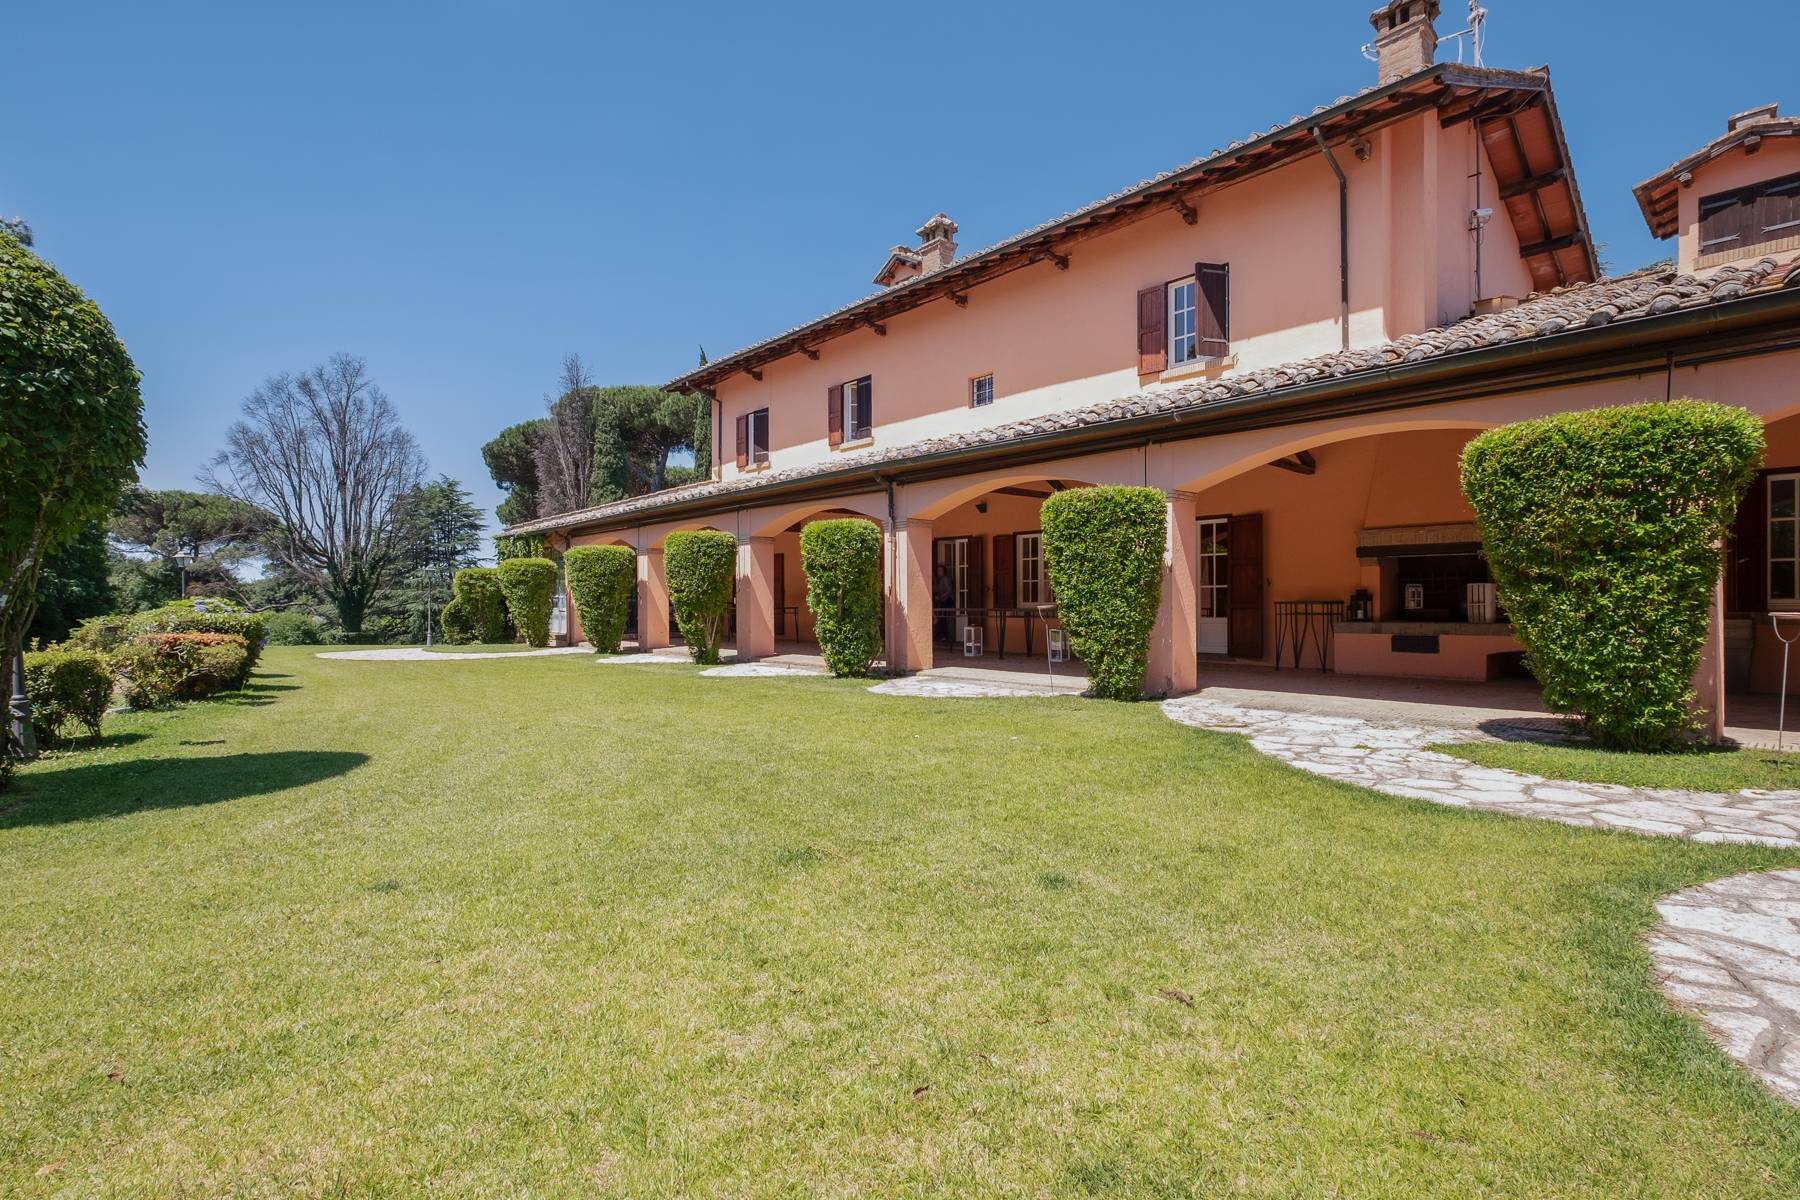 Claudia Estate: charm and elegance surrounded by nature - 7